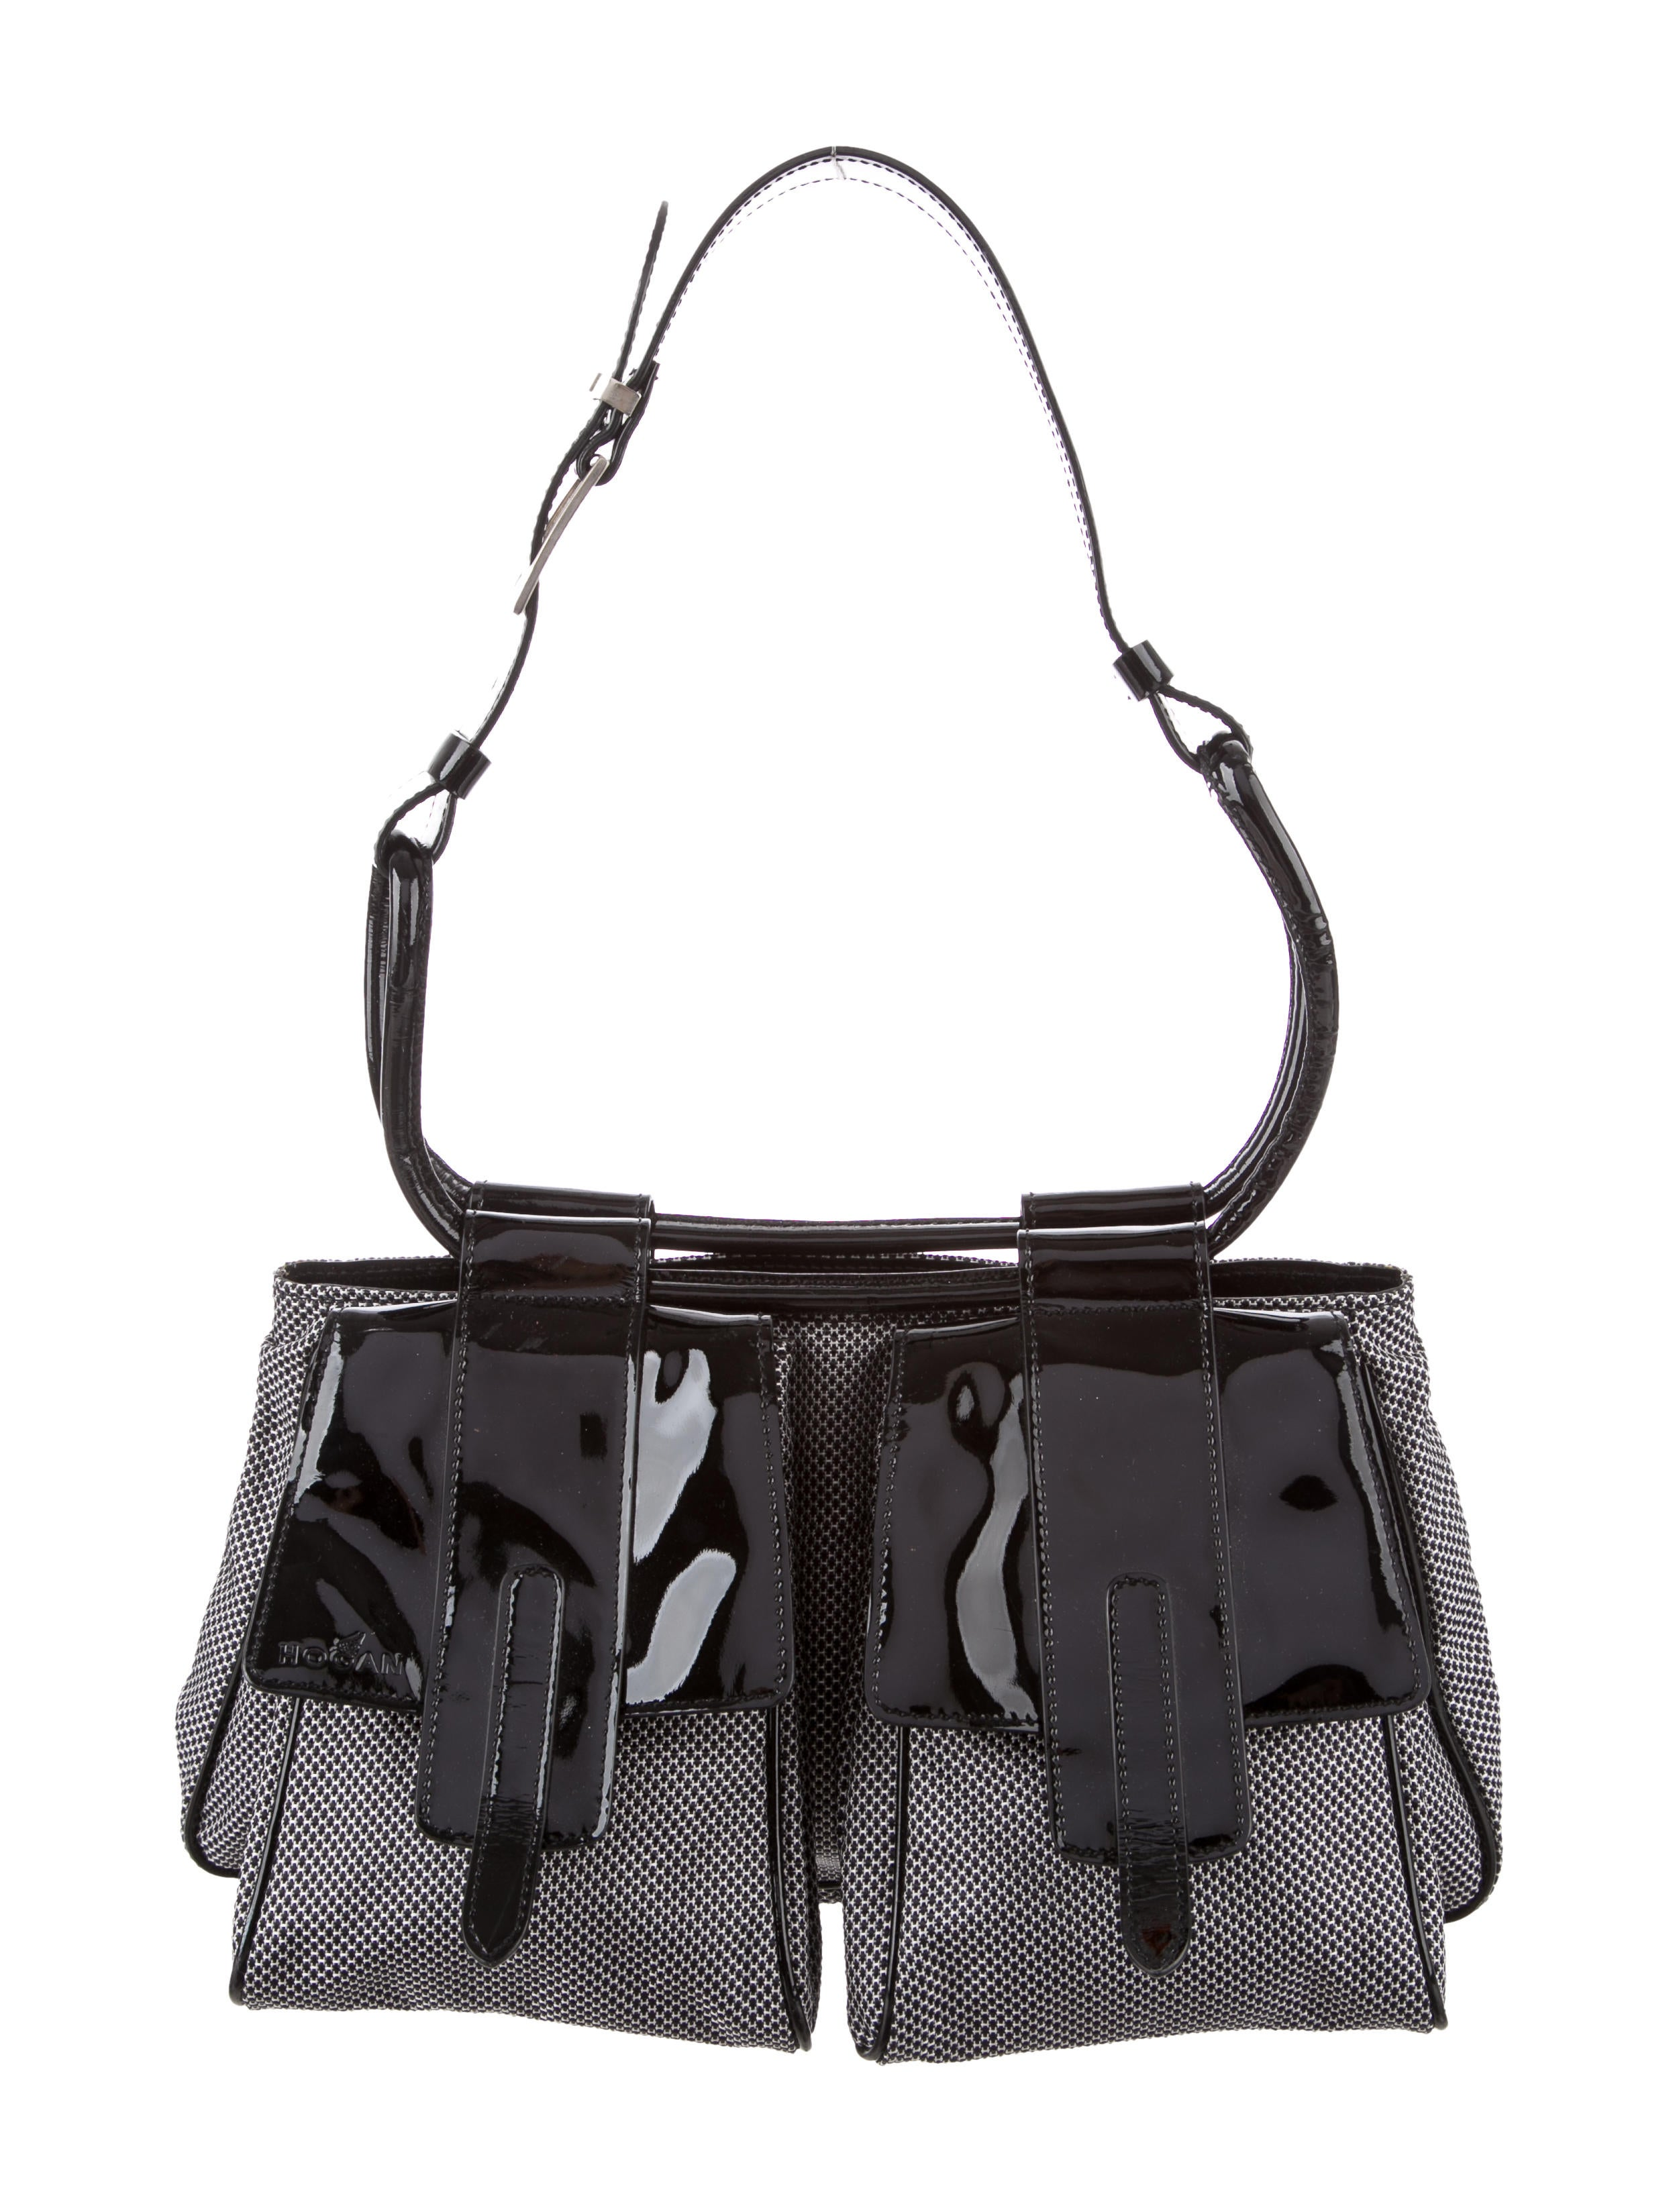 Patent Leather Trimmed Woven Bag